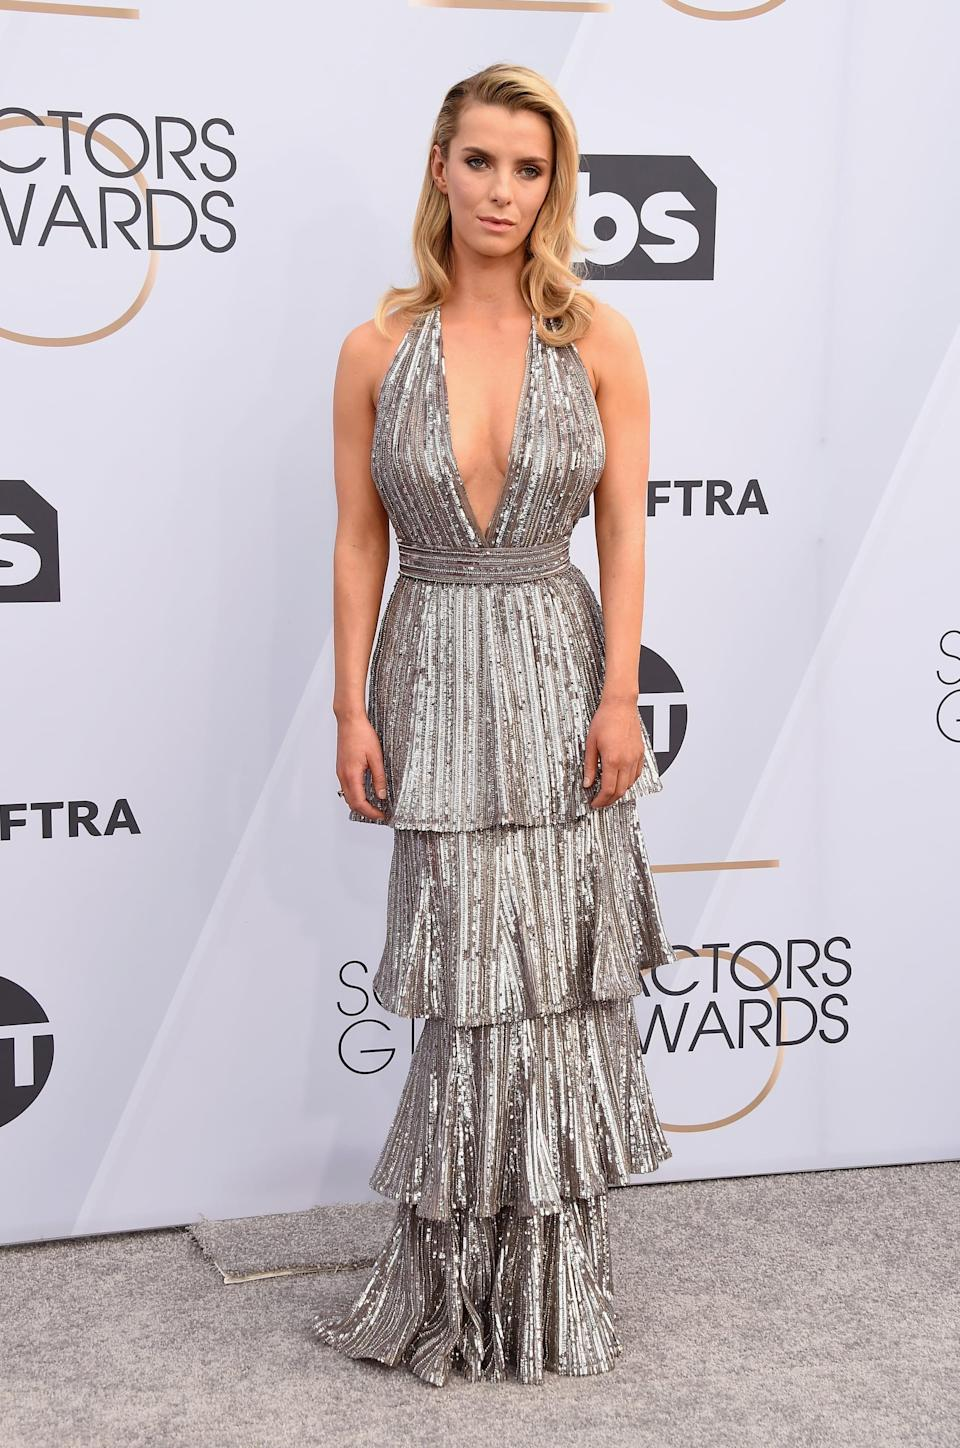 <p>Wearing a silver tiered gown by Krikor Jabotian with Alexandre Birman heels and Beladora jewels.</p>